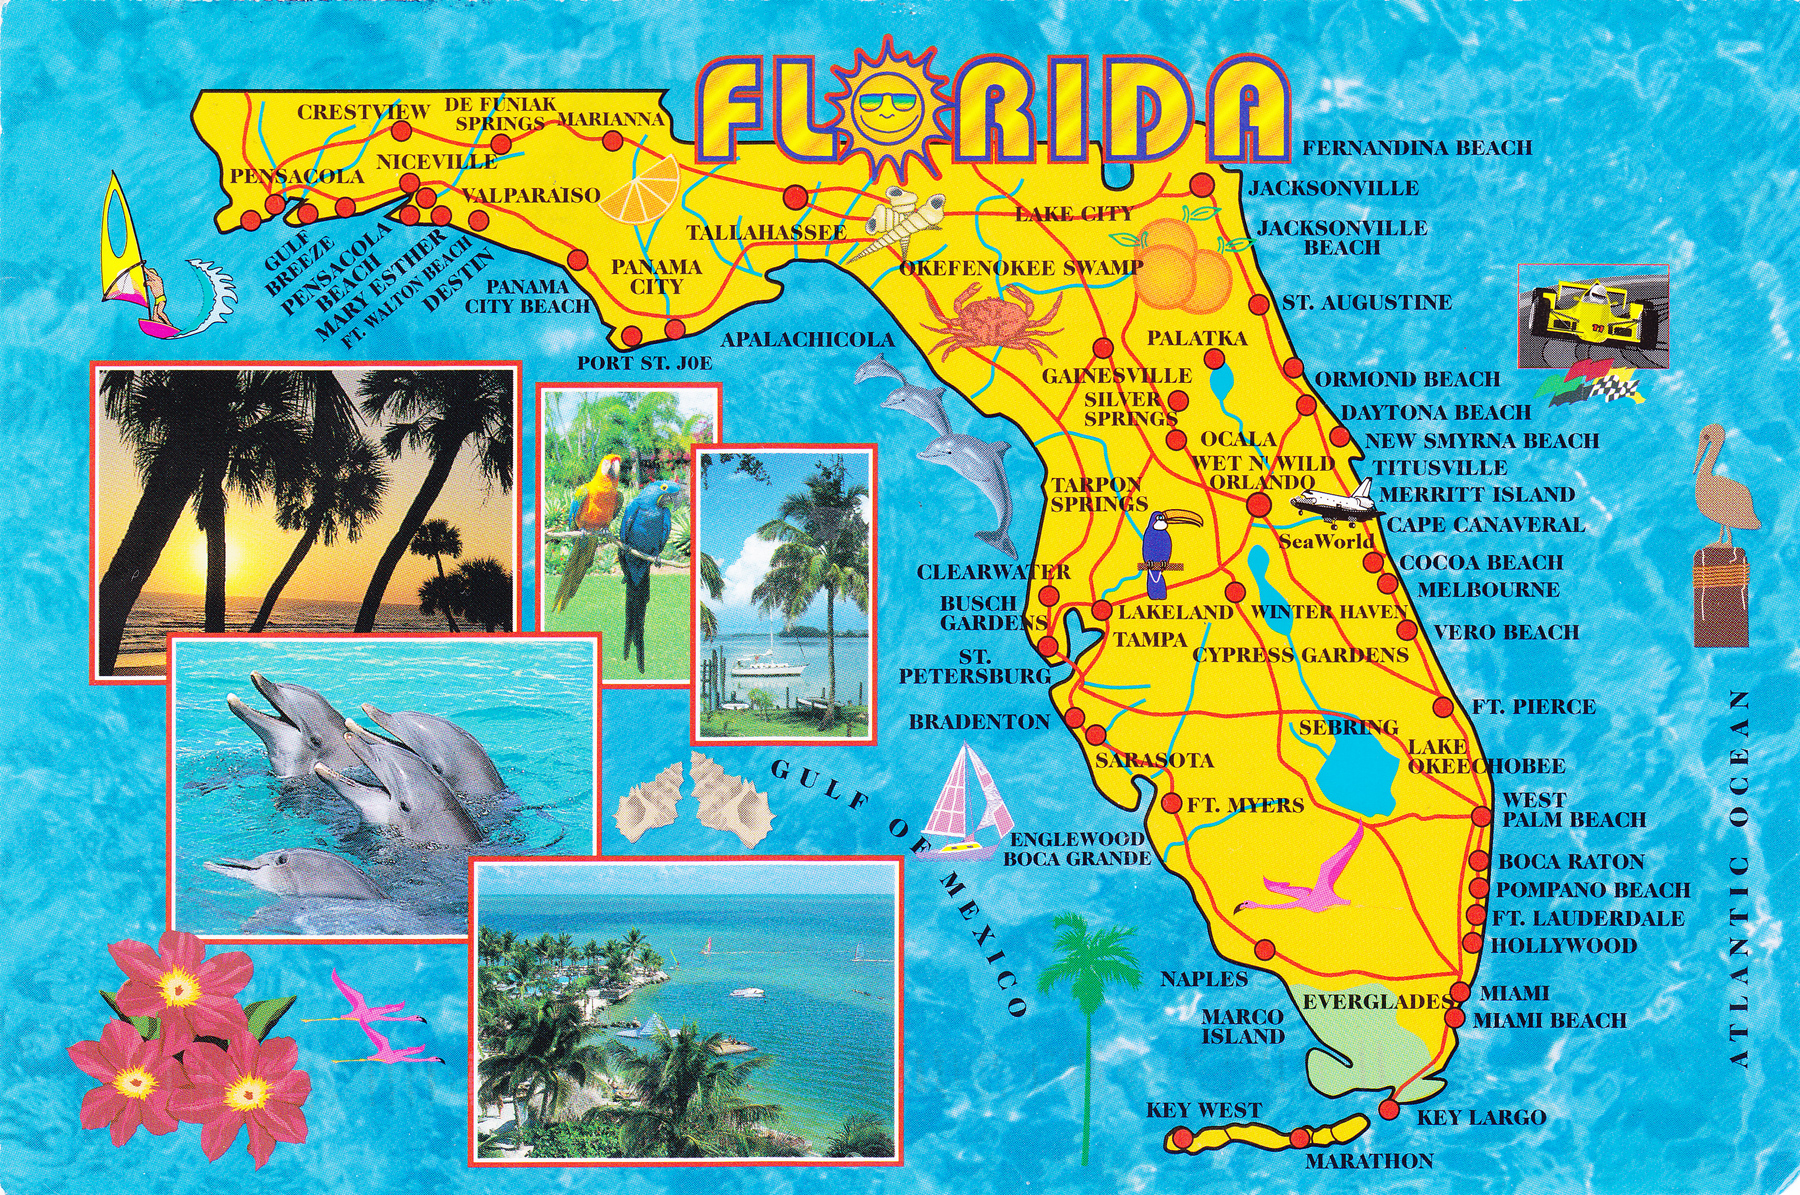 Florida Beaches Gulf Coast Map Is a Florida Beach Front Vacation Right for You?